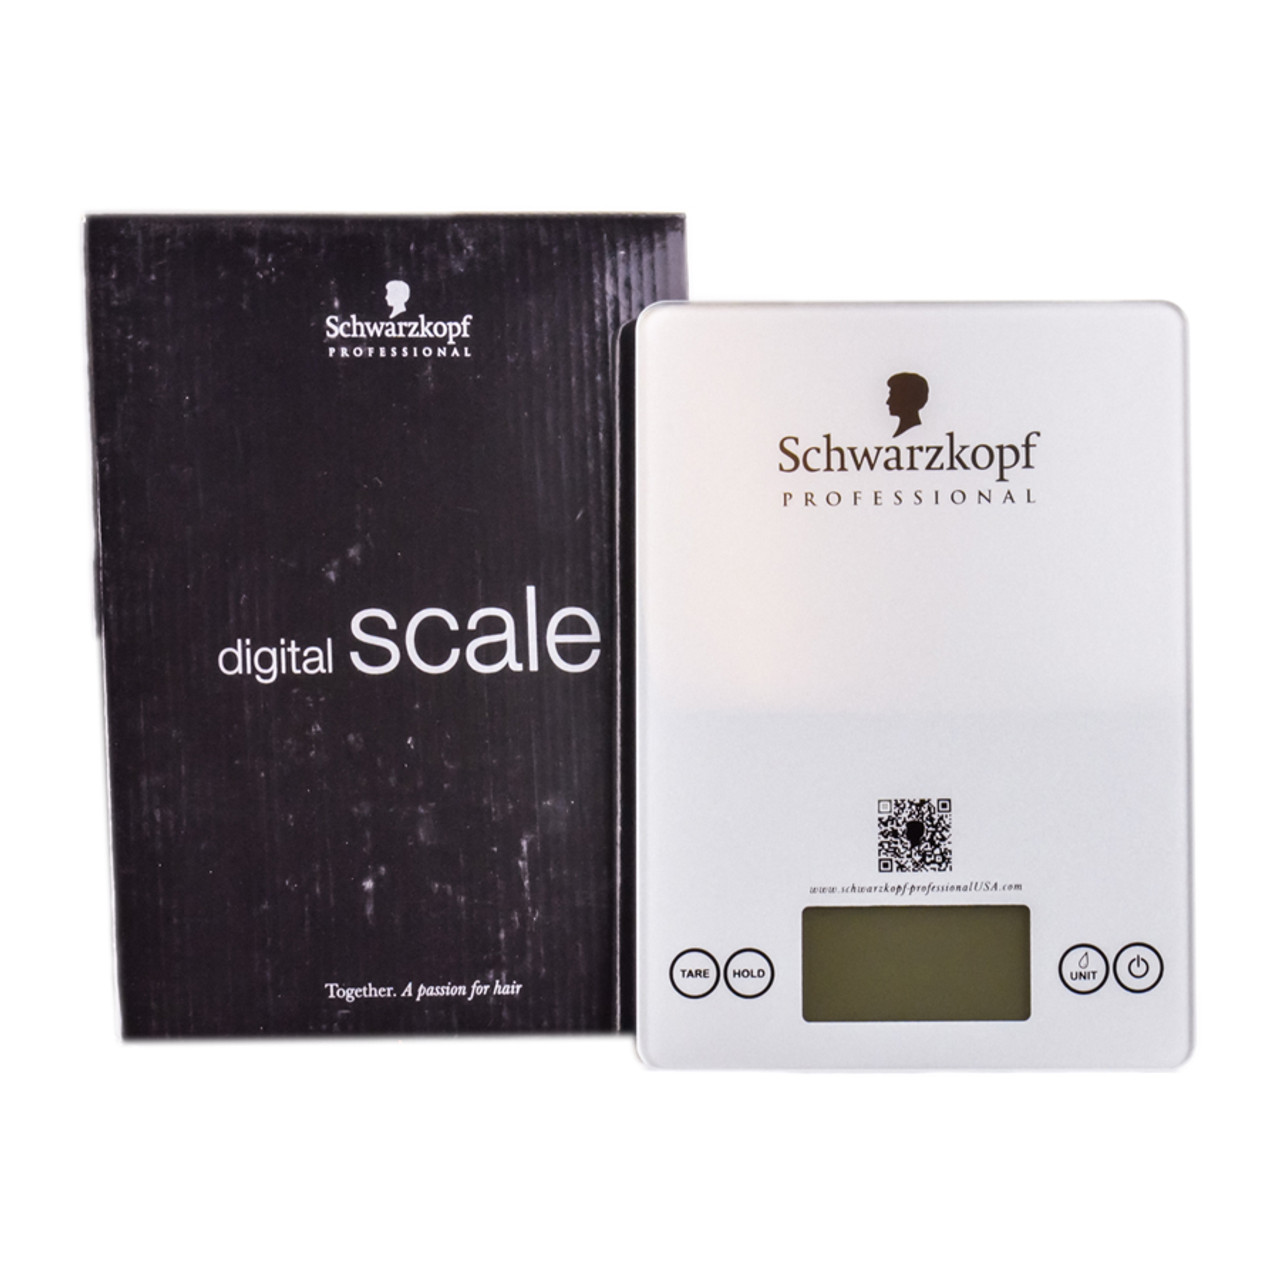 Schwarzkopf professional digital scale sleekshop formerly schwarzkopf professional digital scale nvjuhfo Gallery